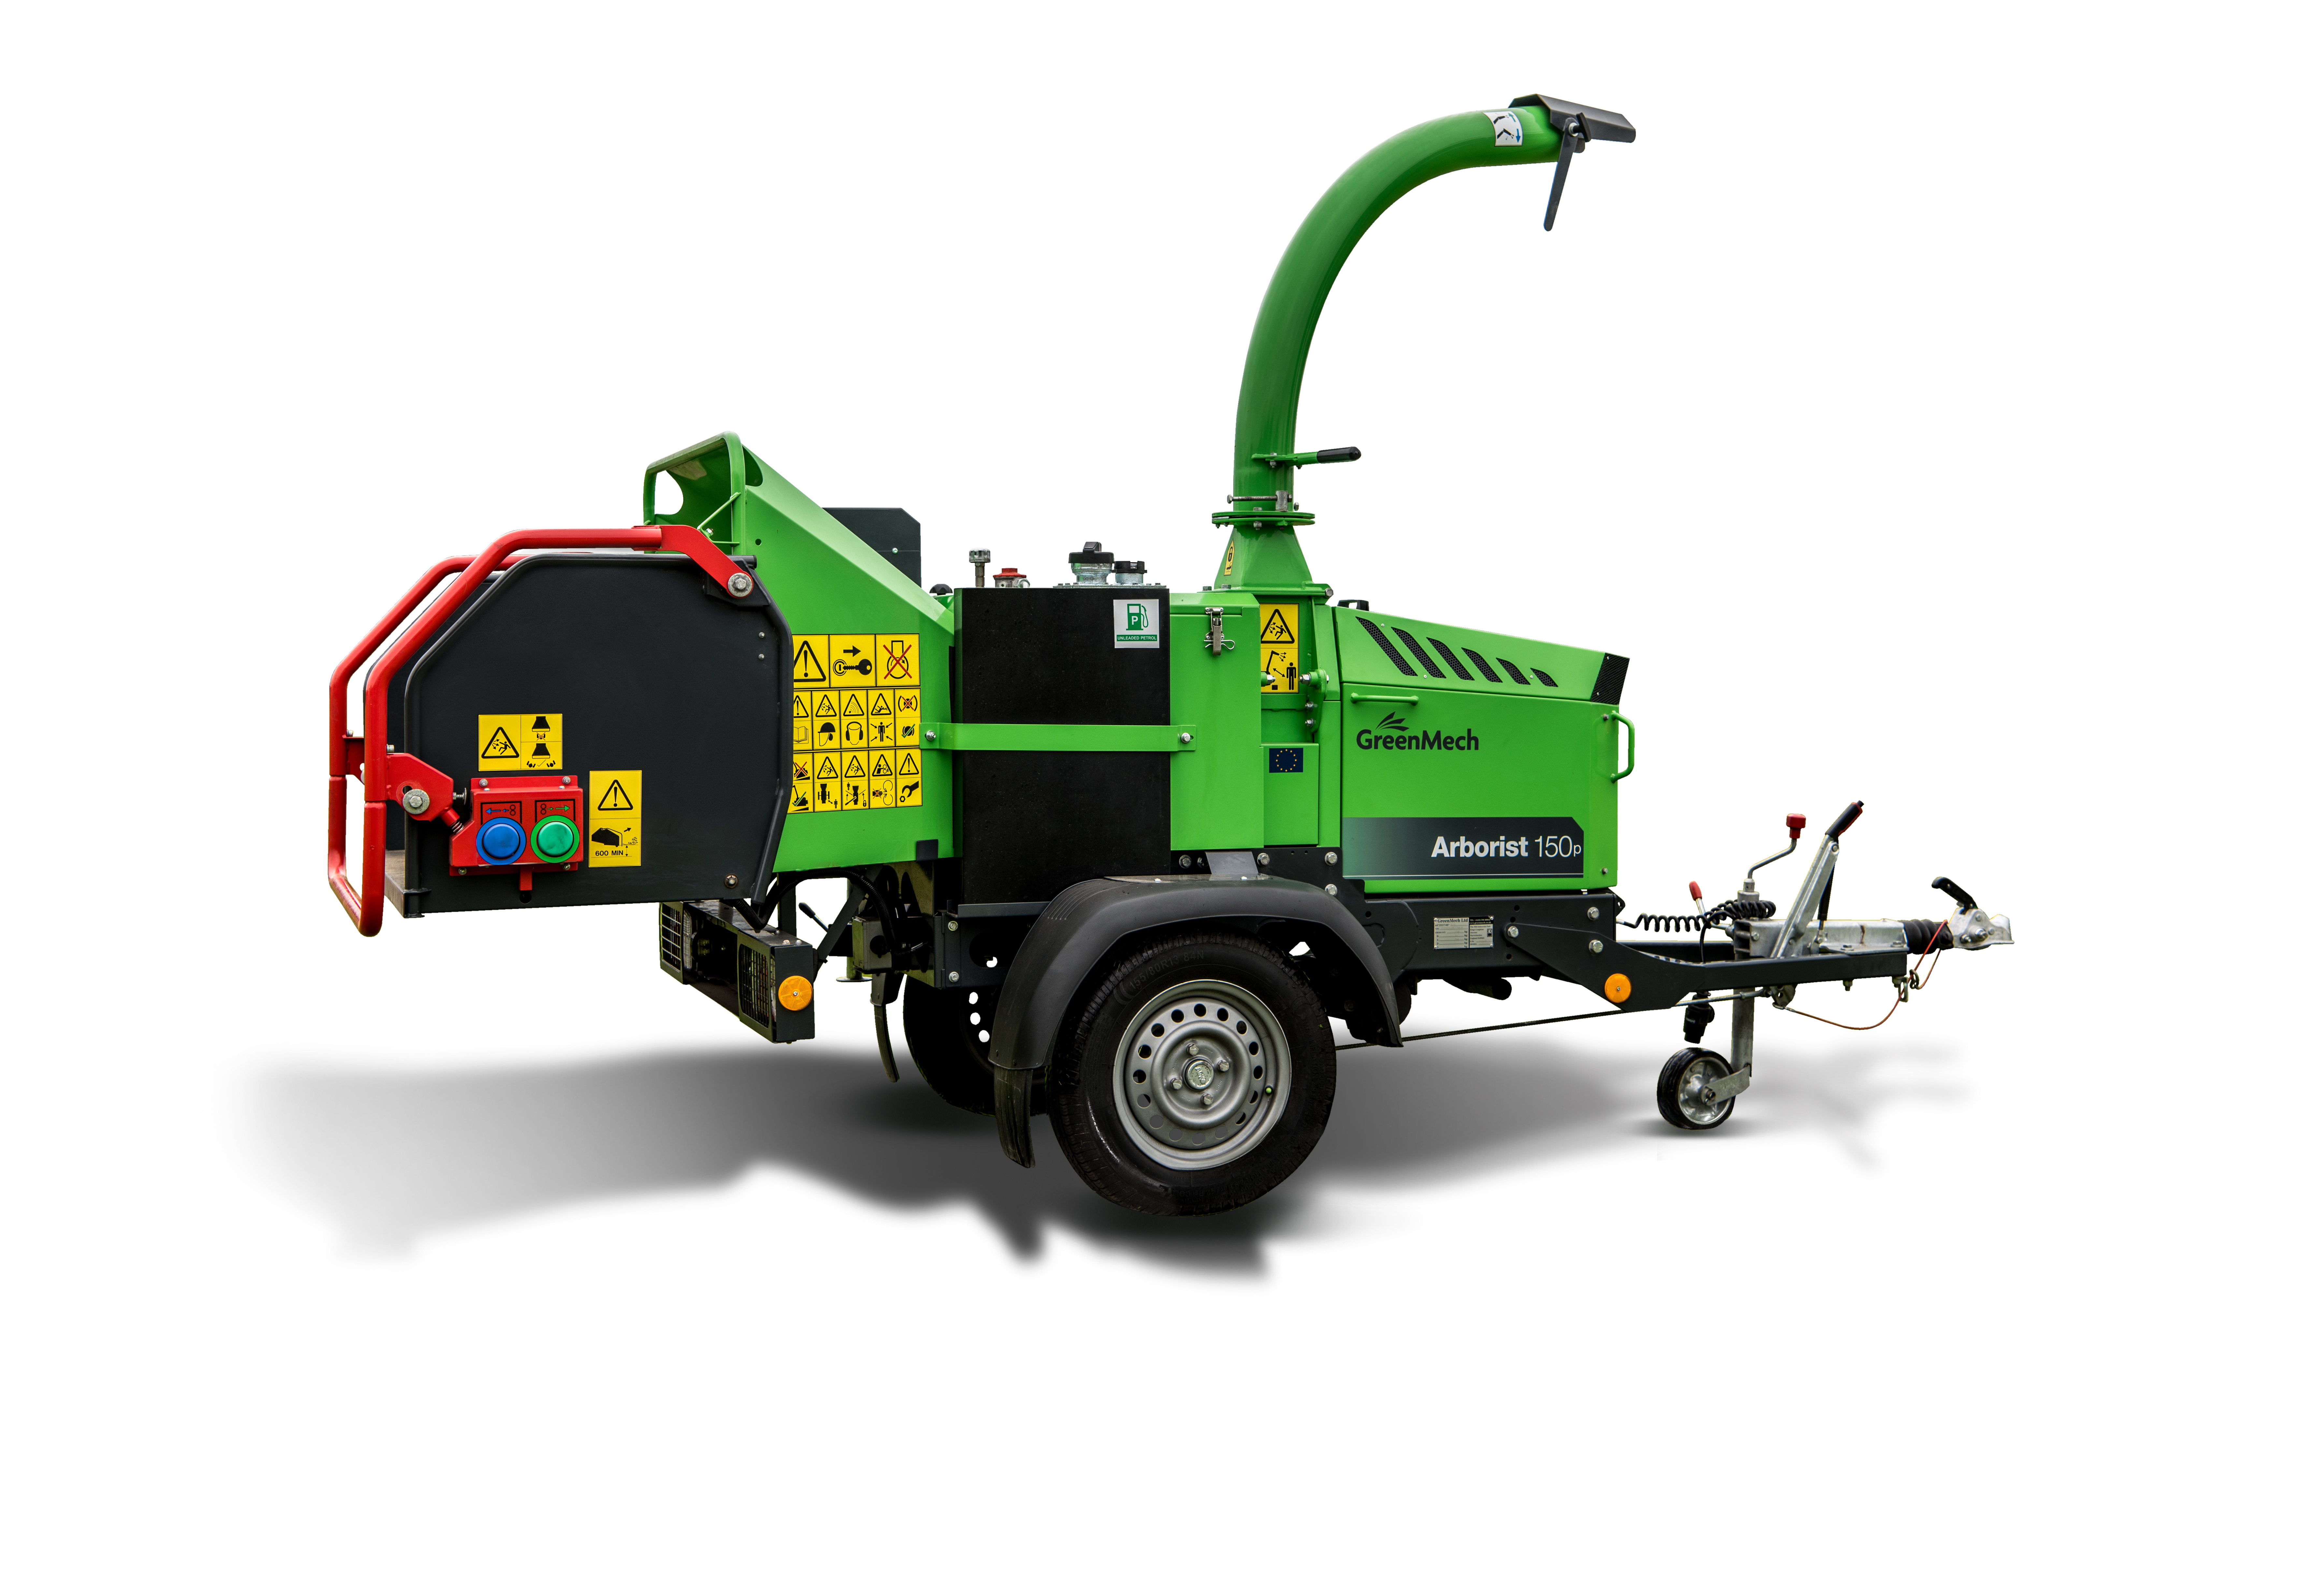 Arborist 150p cut-out side R2 infeed down (1)